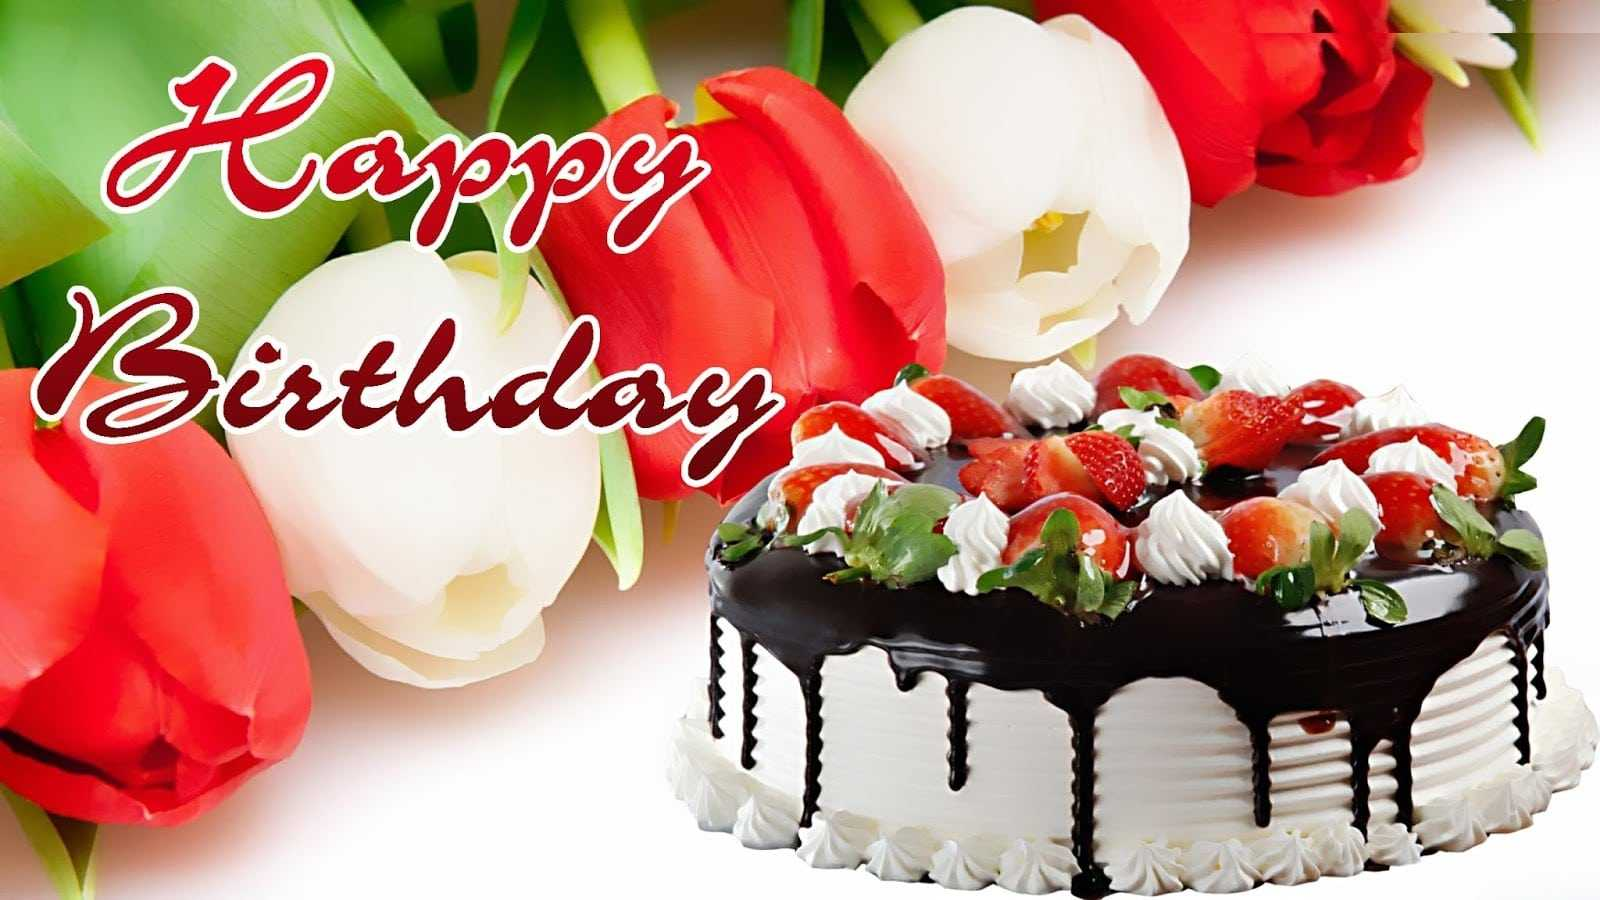 Advance Happy Birthday Wishes Hd Images Free Download